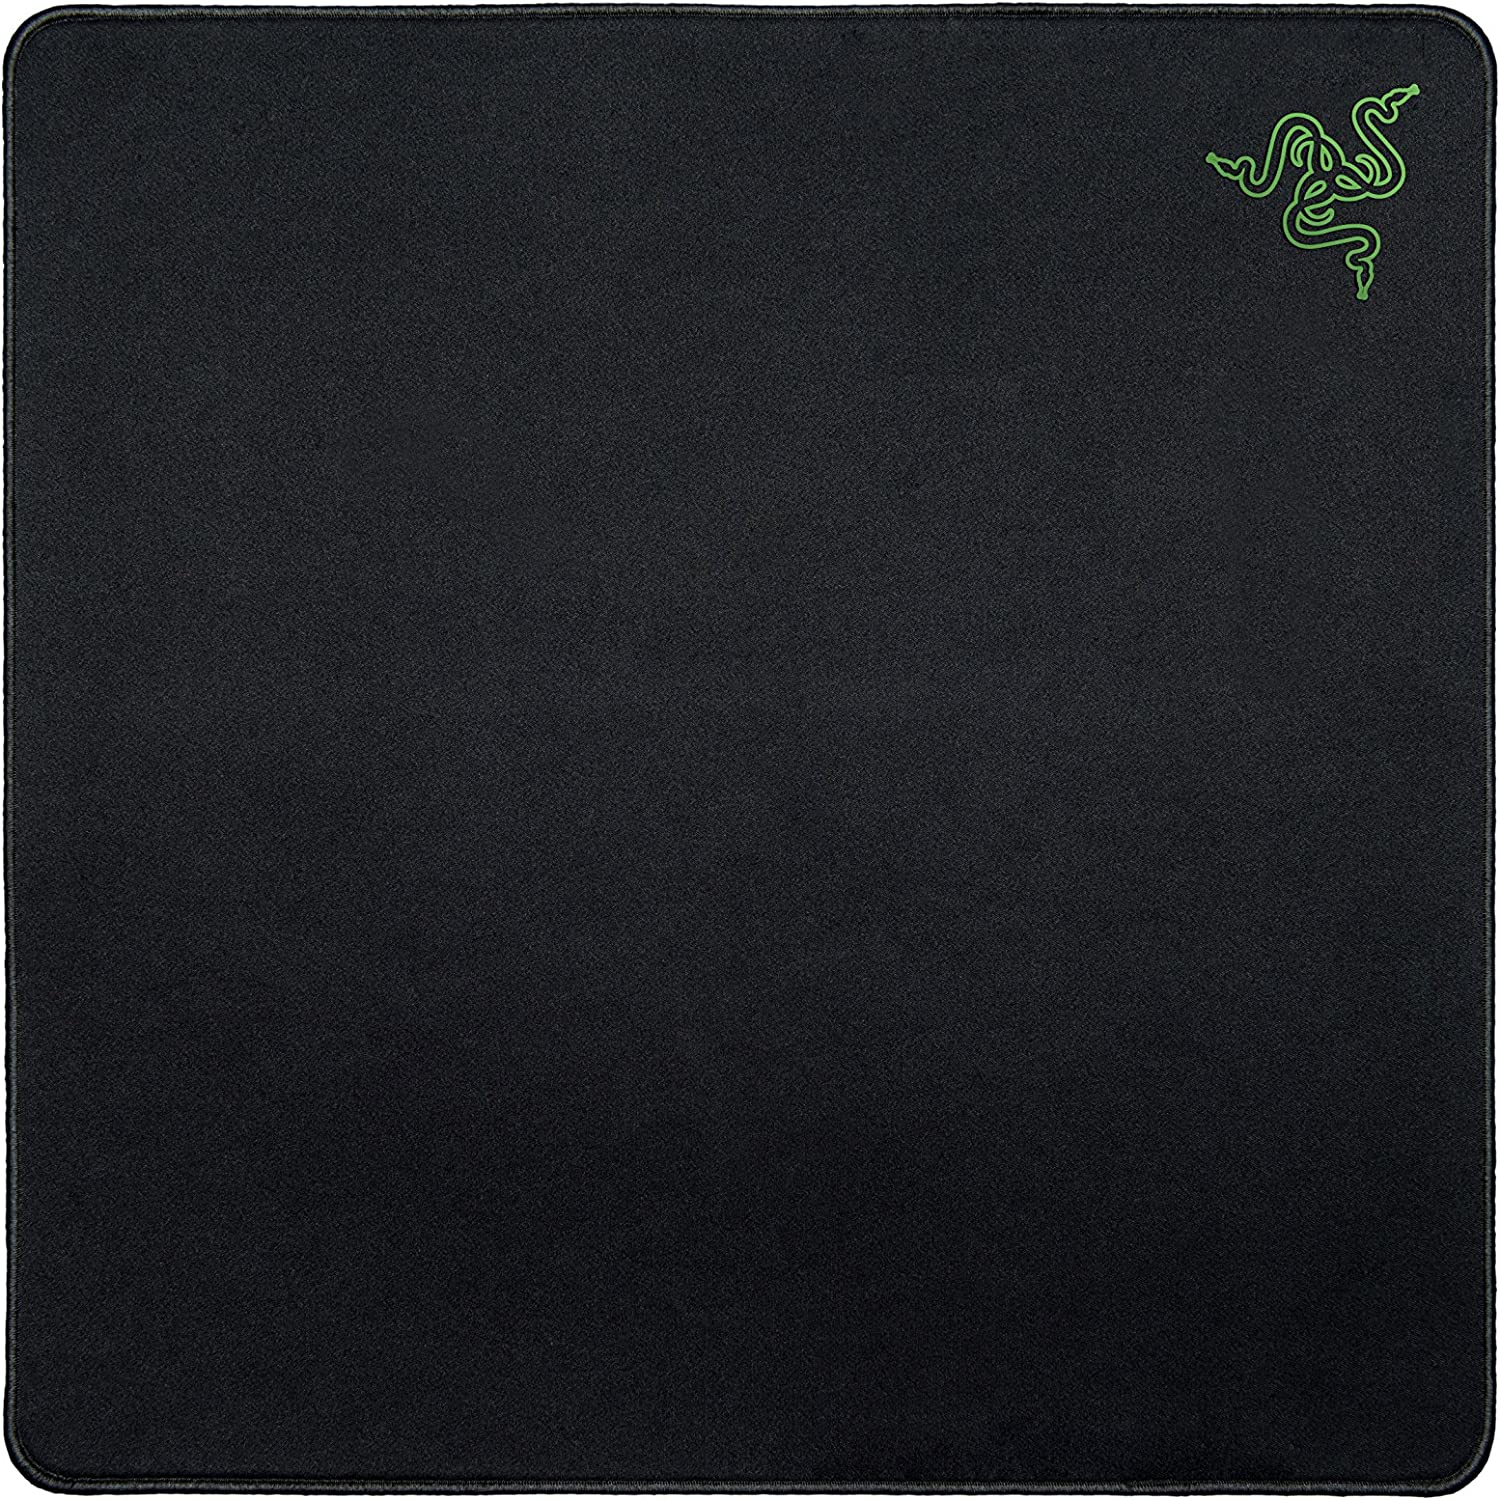 Amazon Com Razer Gigantus Ultra Large Size Optimized Gaming Surface 5 Mm Thick Rubberized Base Cloth Esports Gaming Mouse Mat Computers Accessories